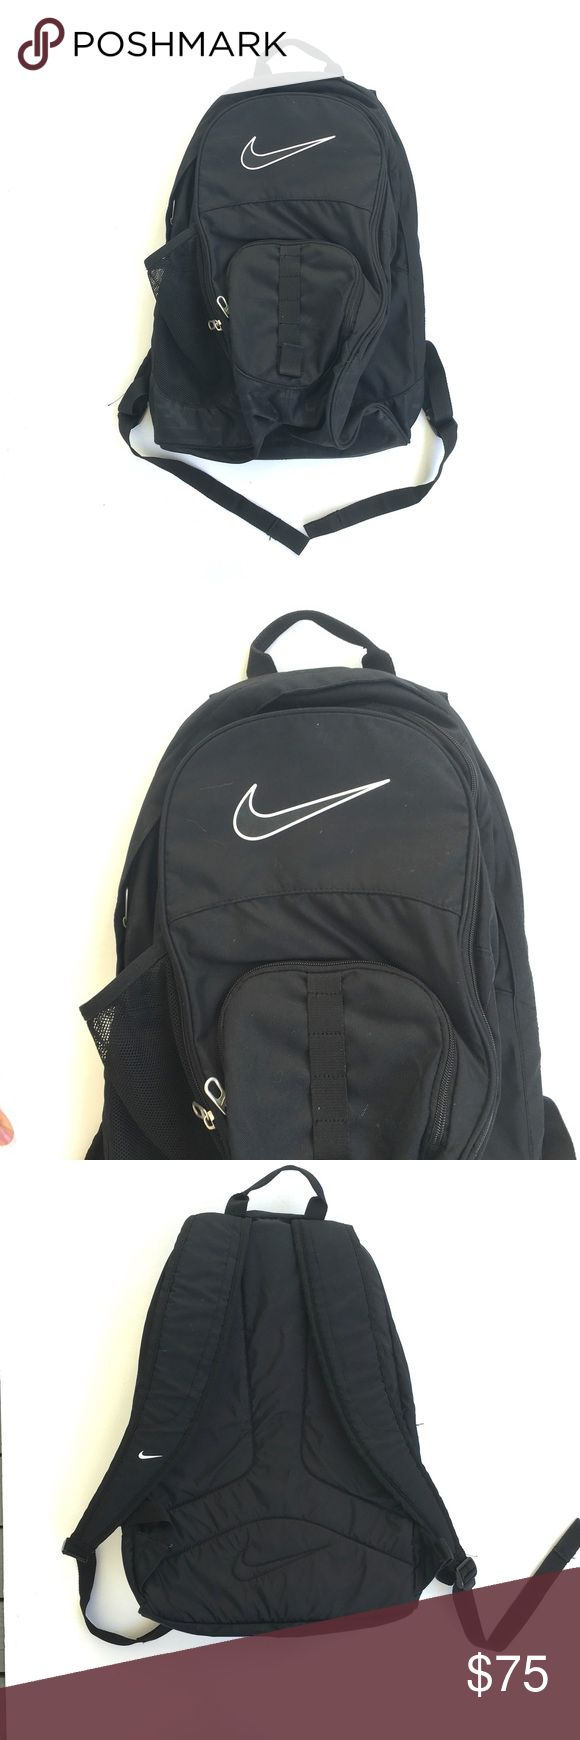 NWOT Black nike backpack Never used as I was medically outed from my private school track and field team and all college sports :/ bought the bag before this happened. Small embroidered section that could probably be removed by a seamstress and a seam ripper. Black nike backpack. 21x14 approx. 4 big pockets- plus inner pockets - and mesh water bottle section. Nike Bags Backpacks